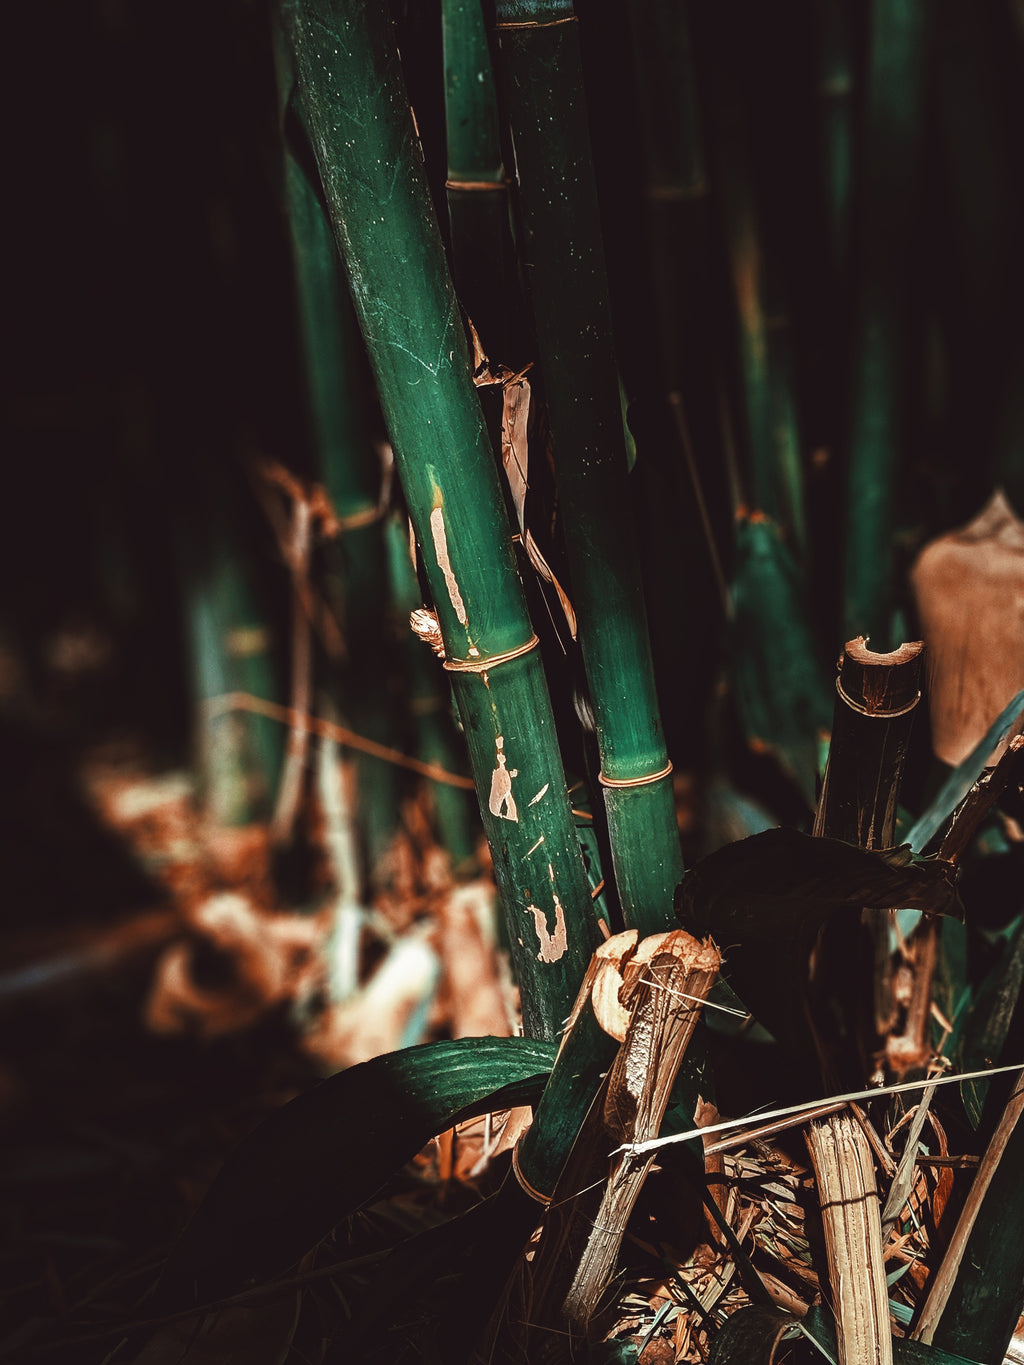 natural growing bamboo with dried up leaves on the ground